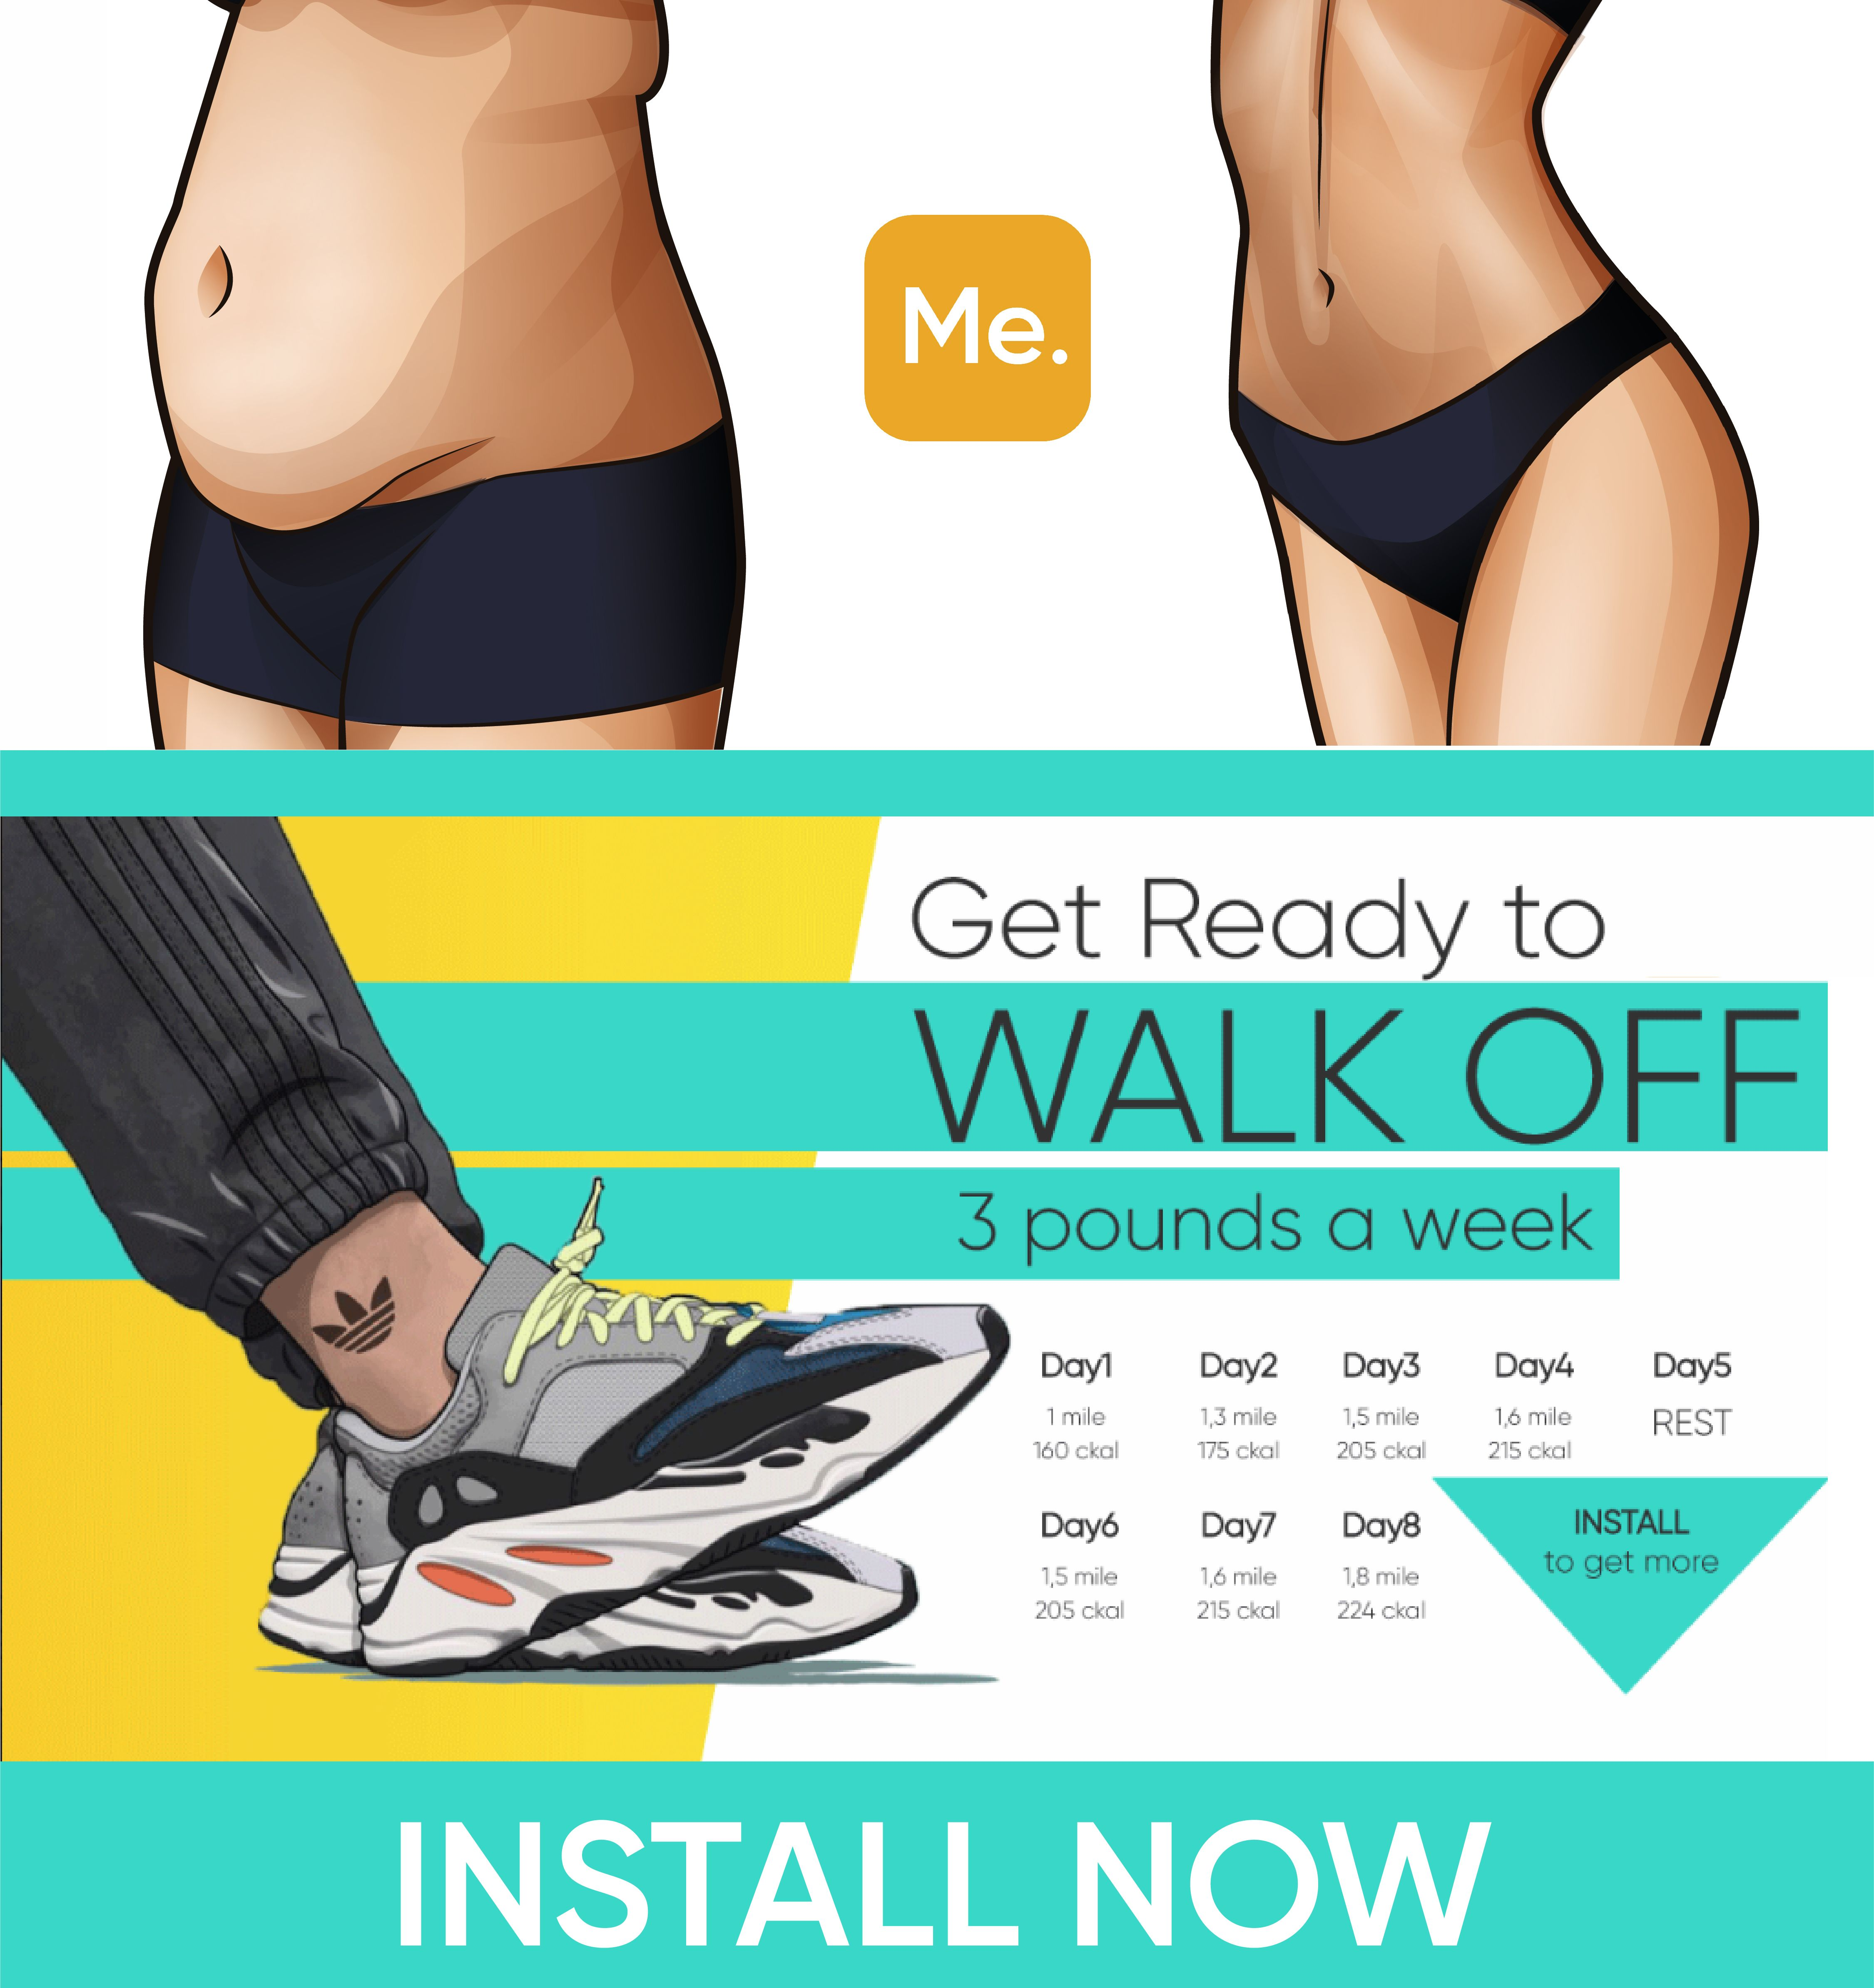 Get Ready to Walk - Lose 9 Pounds a Week  Workout, Healthy body